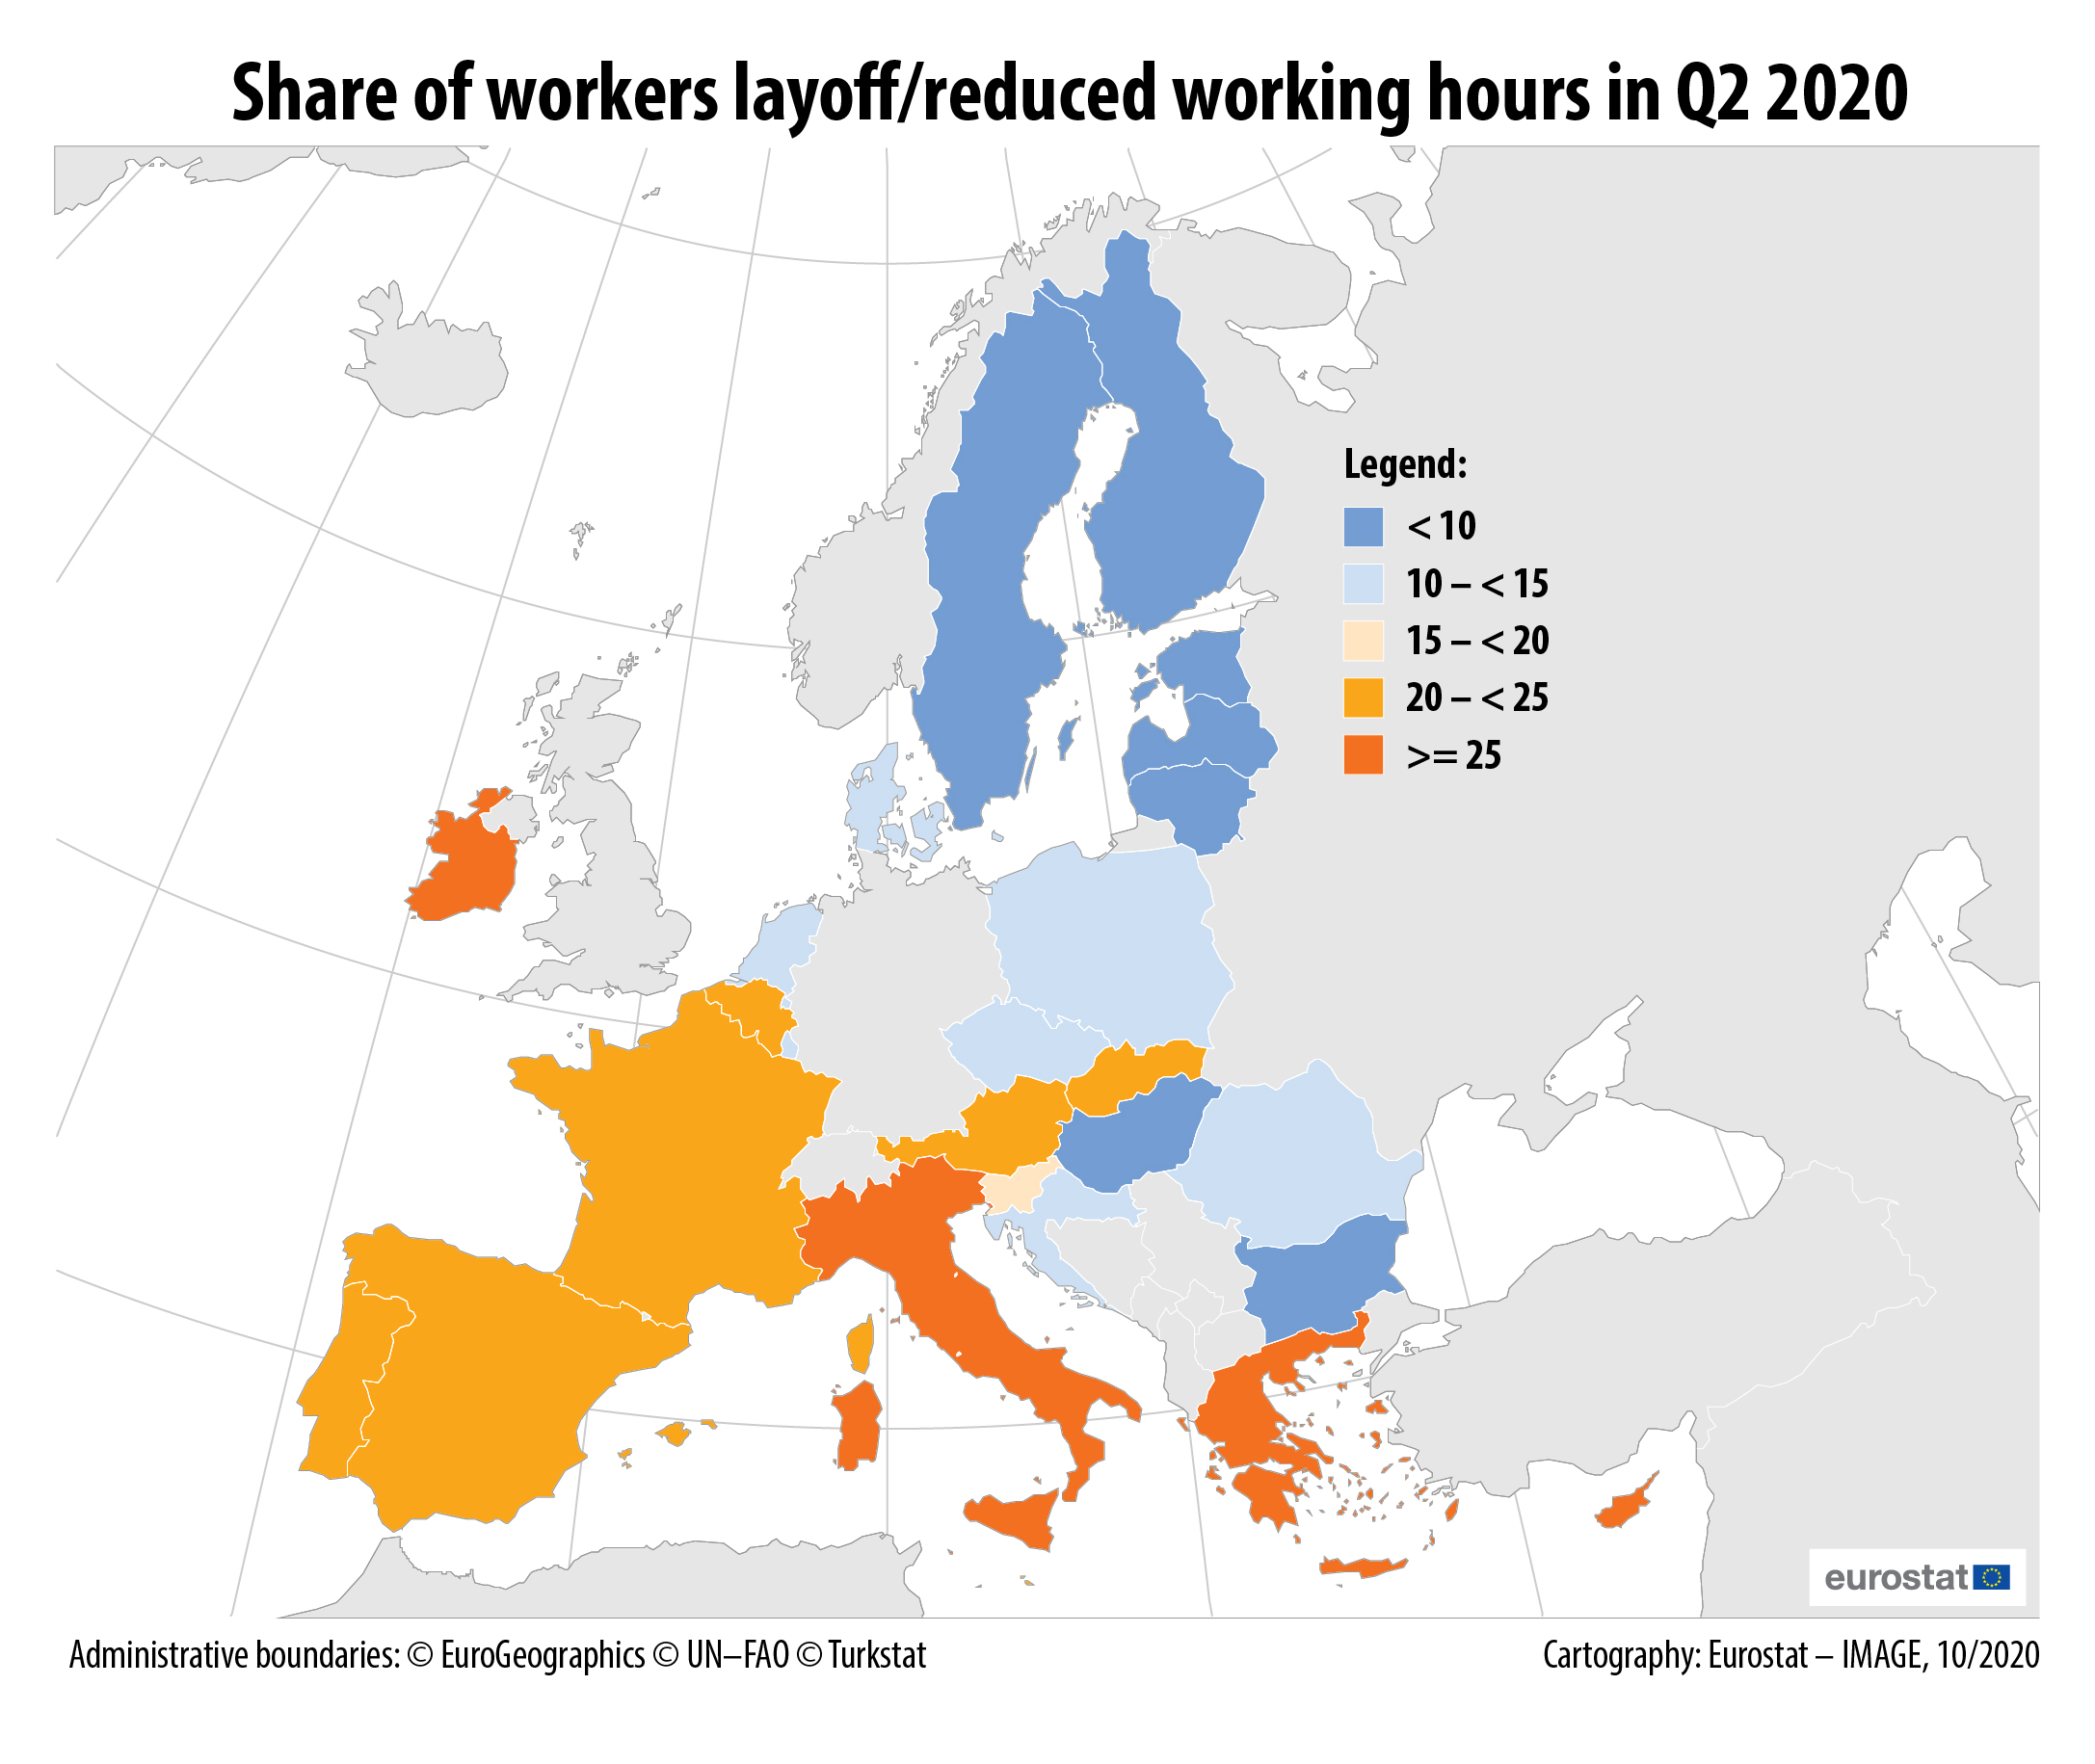 Share of workers with layoff or reduced working hours in Q2 2020